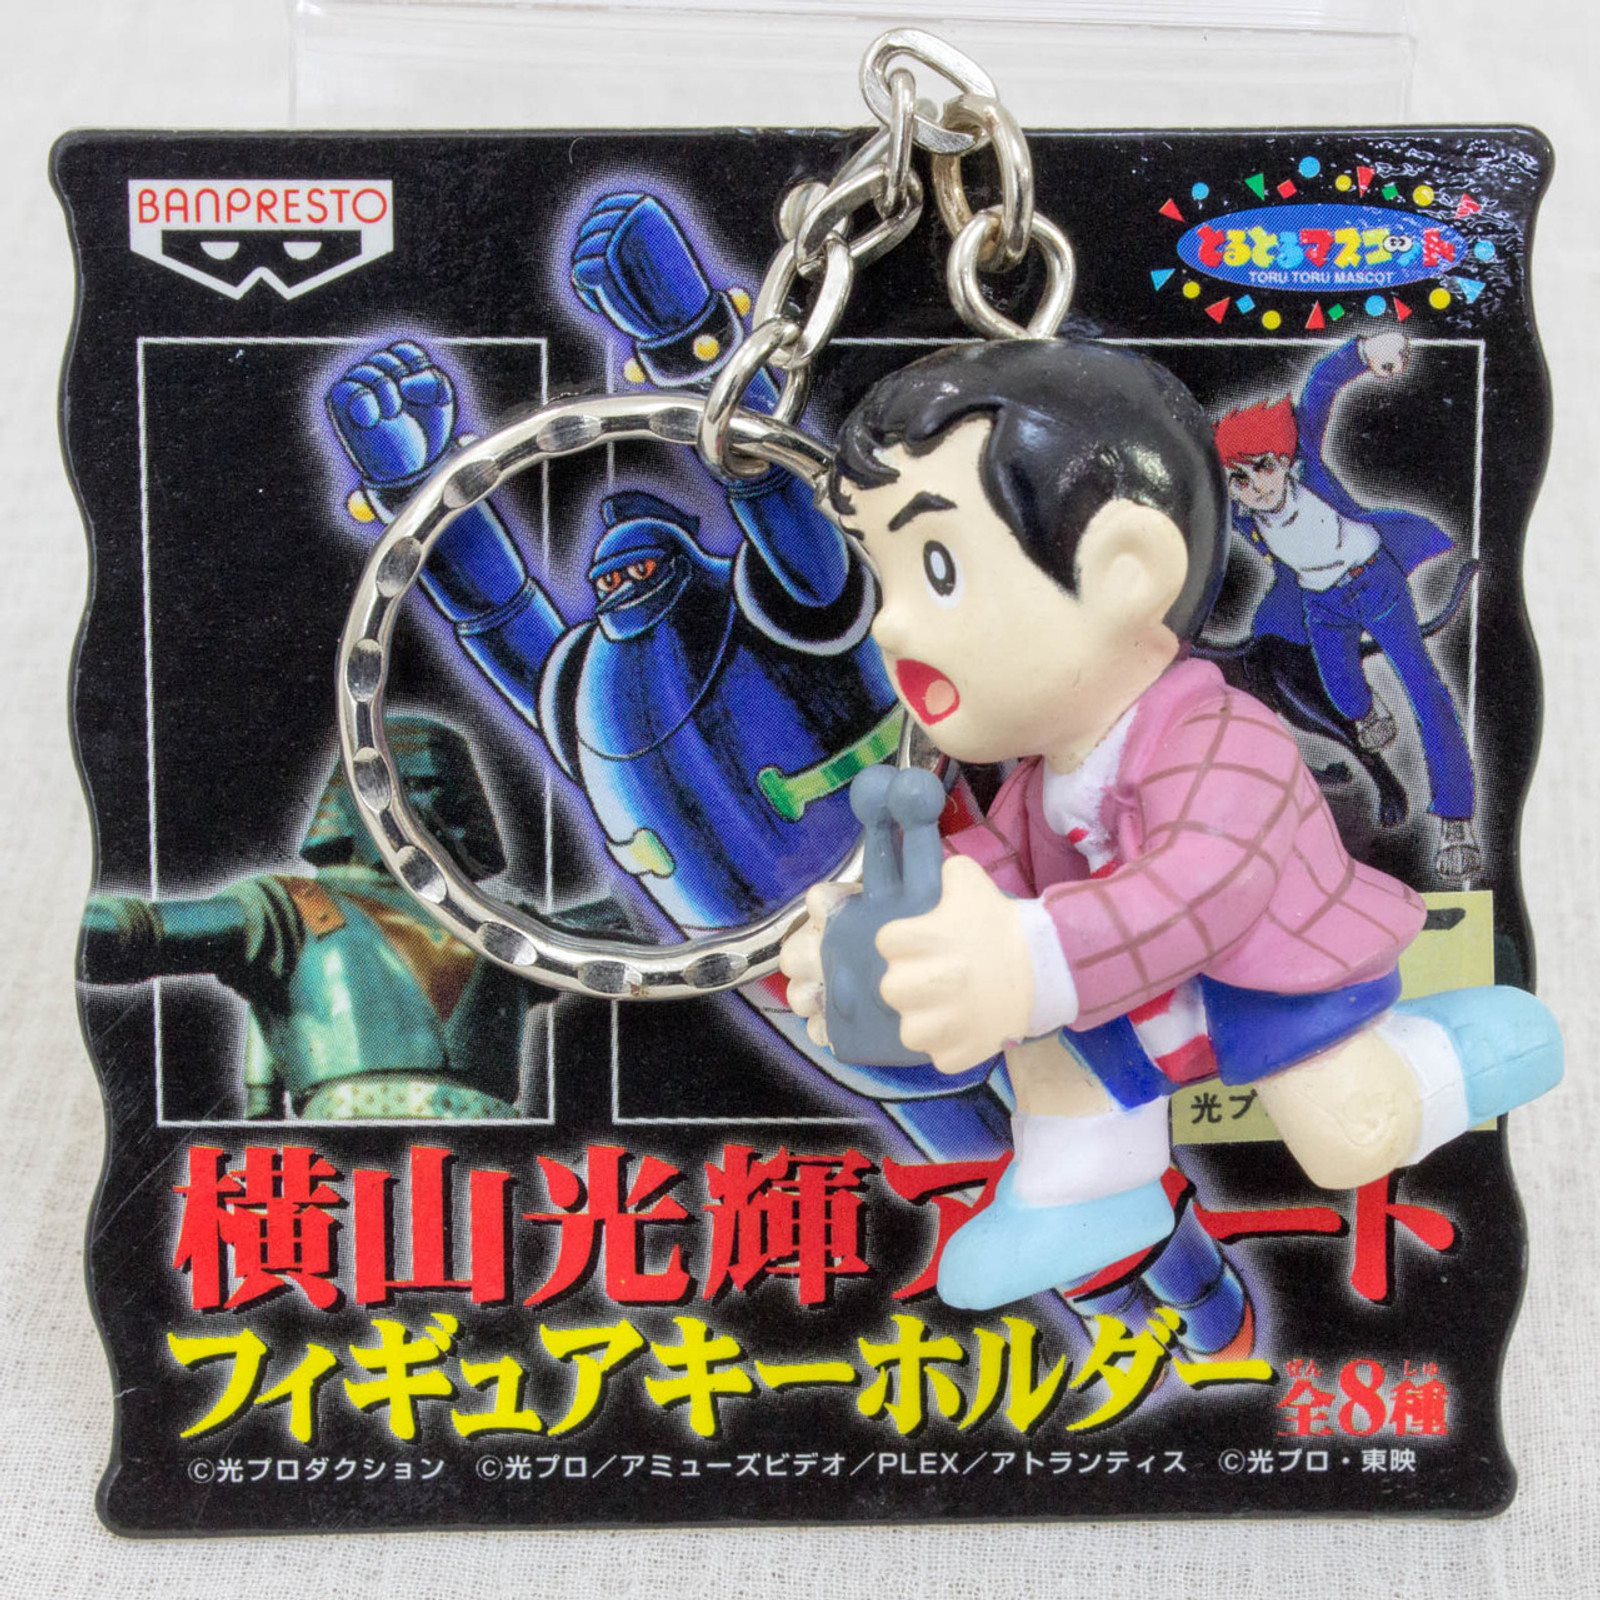 Gigantor Tetsujin 28 Shotaro Kaneda Figure Key Chain Banpresto JAPAN ANIME MANGA